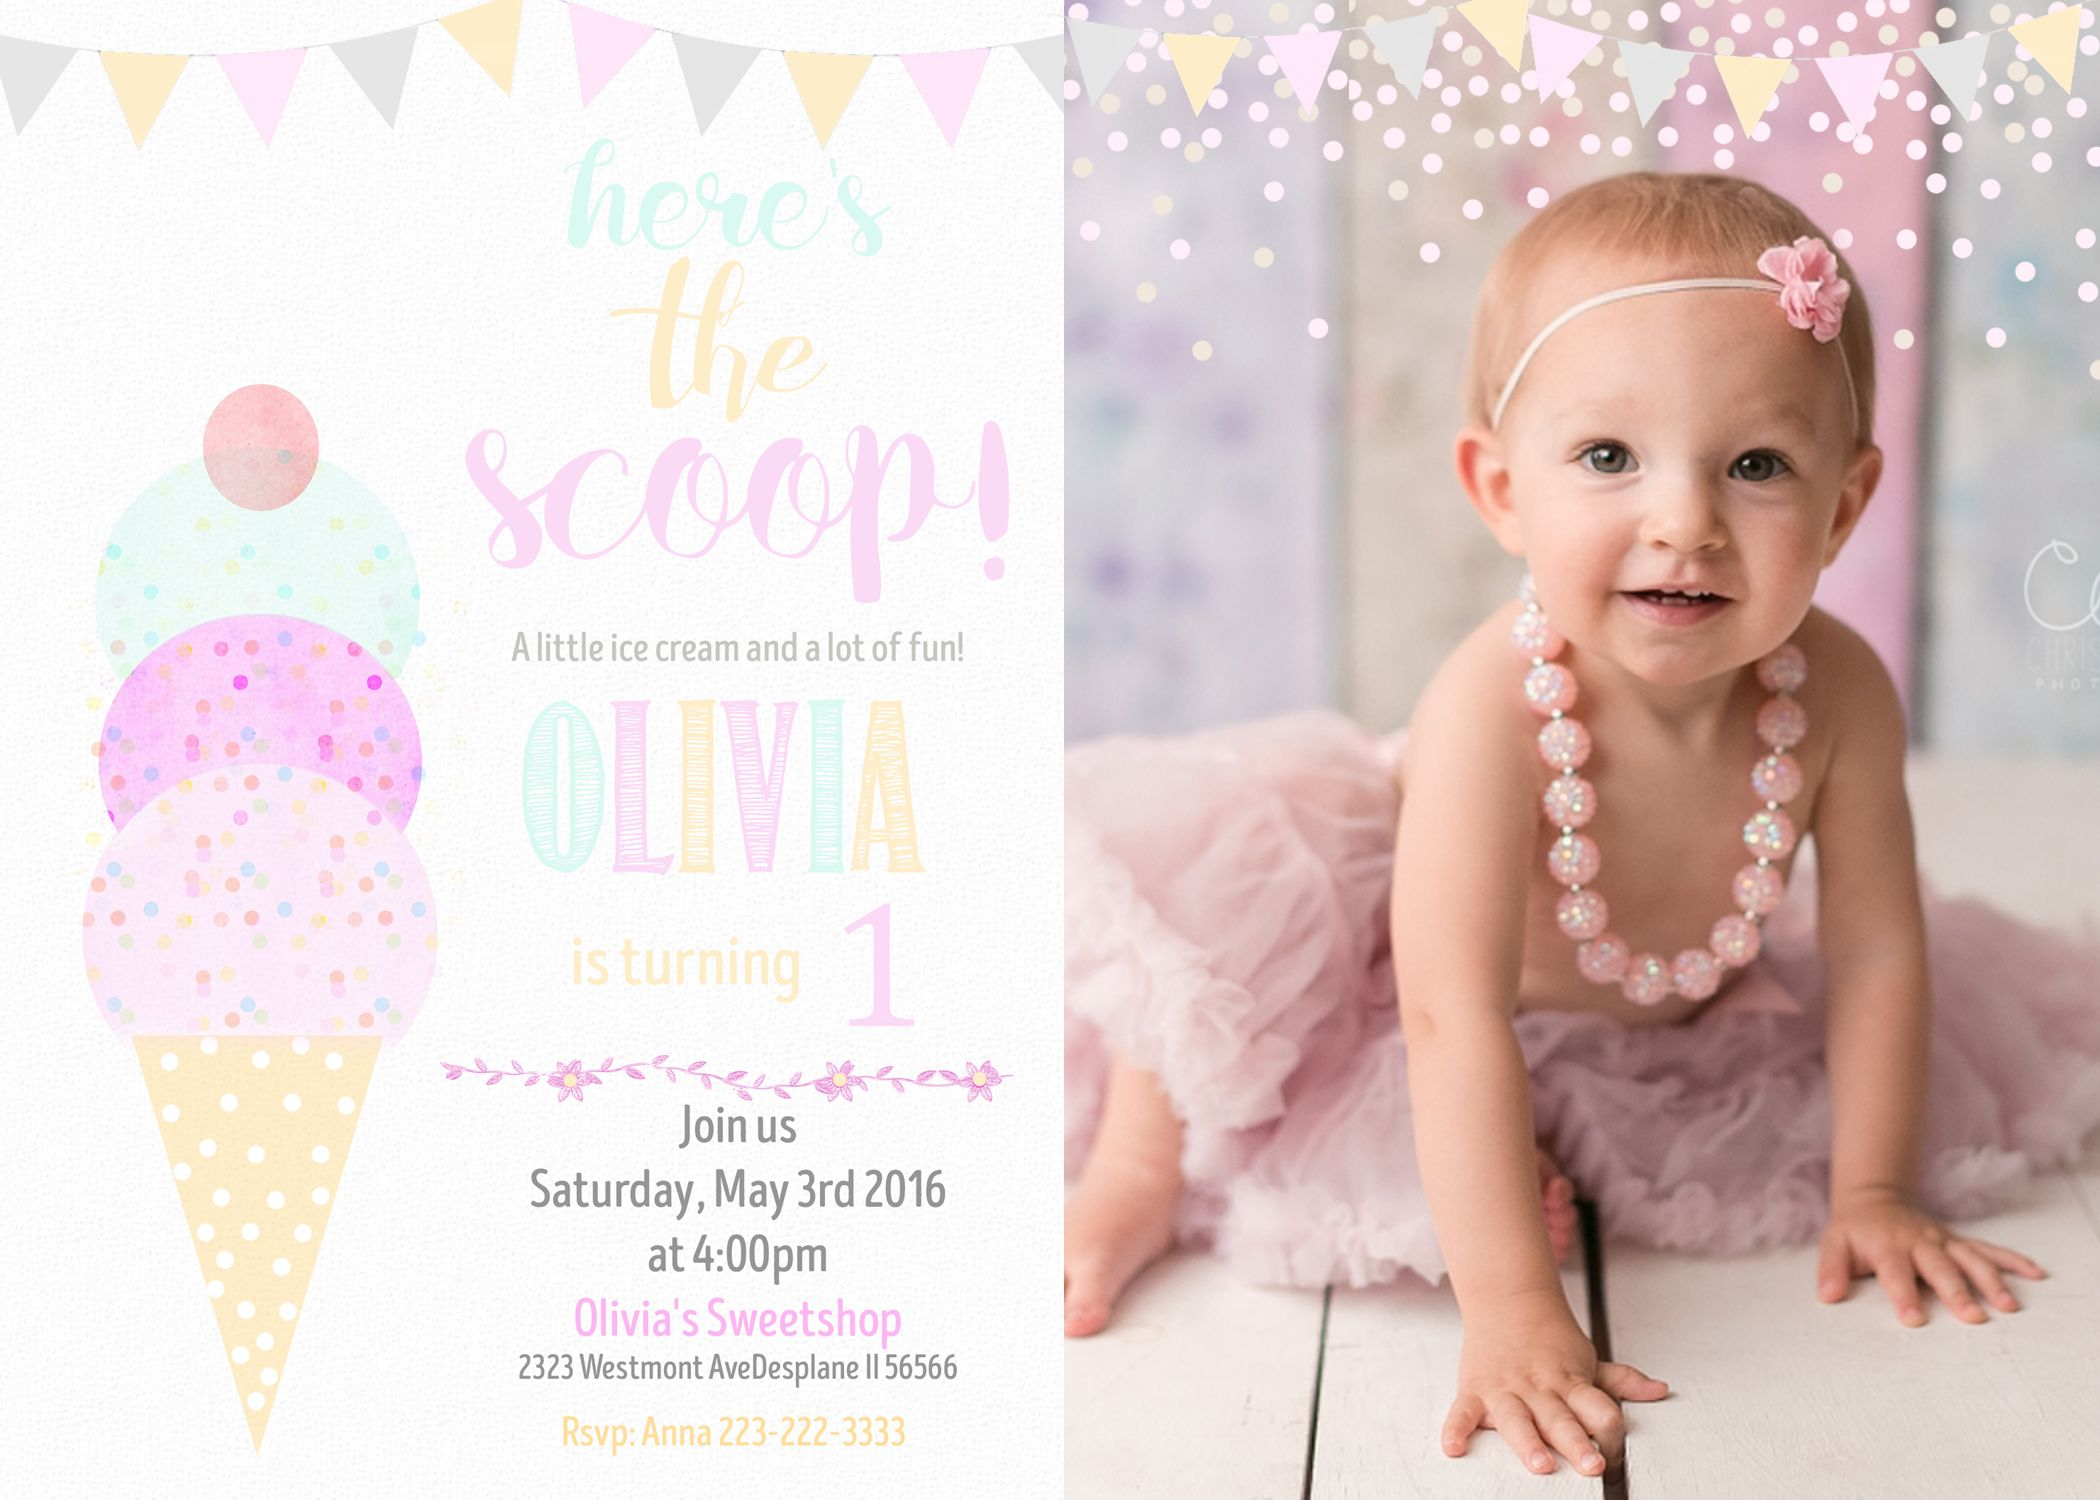 wording ideas forst birthday party invitation%0A Ice Cream Birthday invitation Watercolor Ice cream